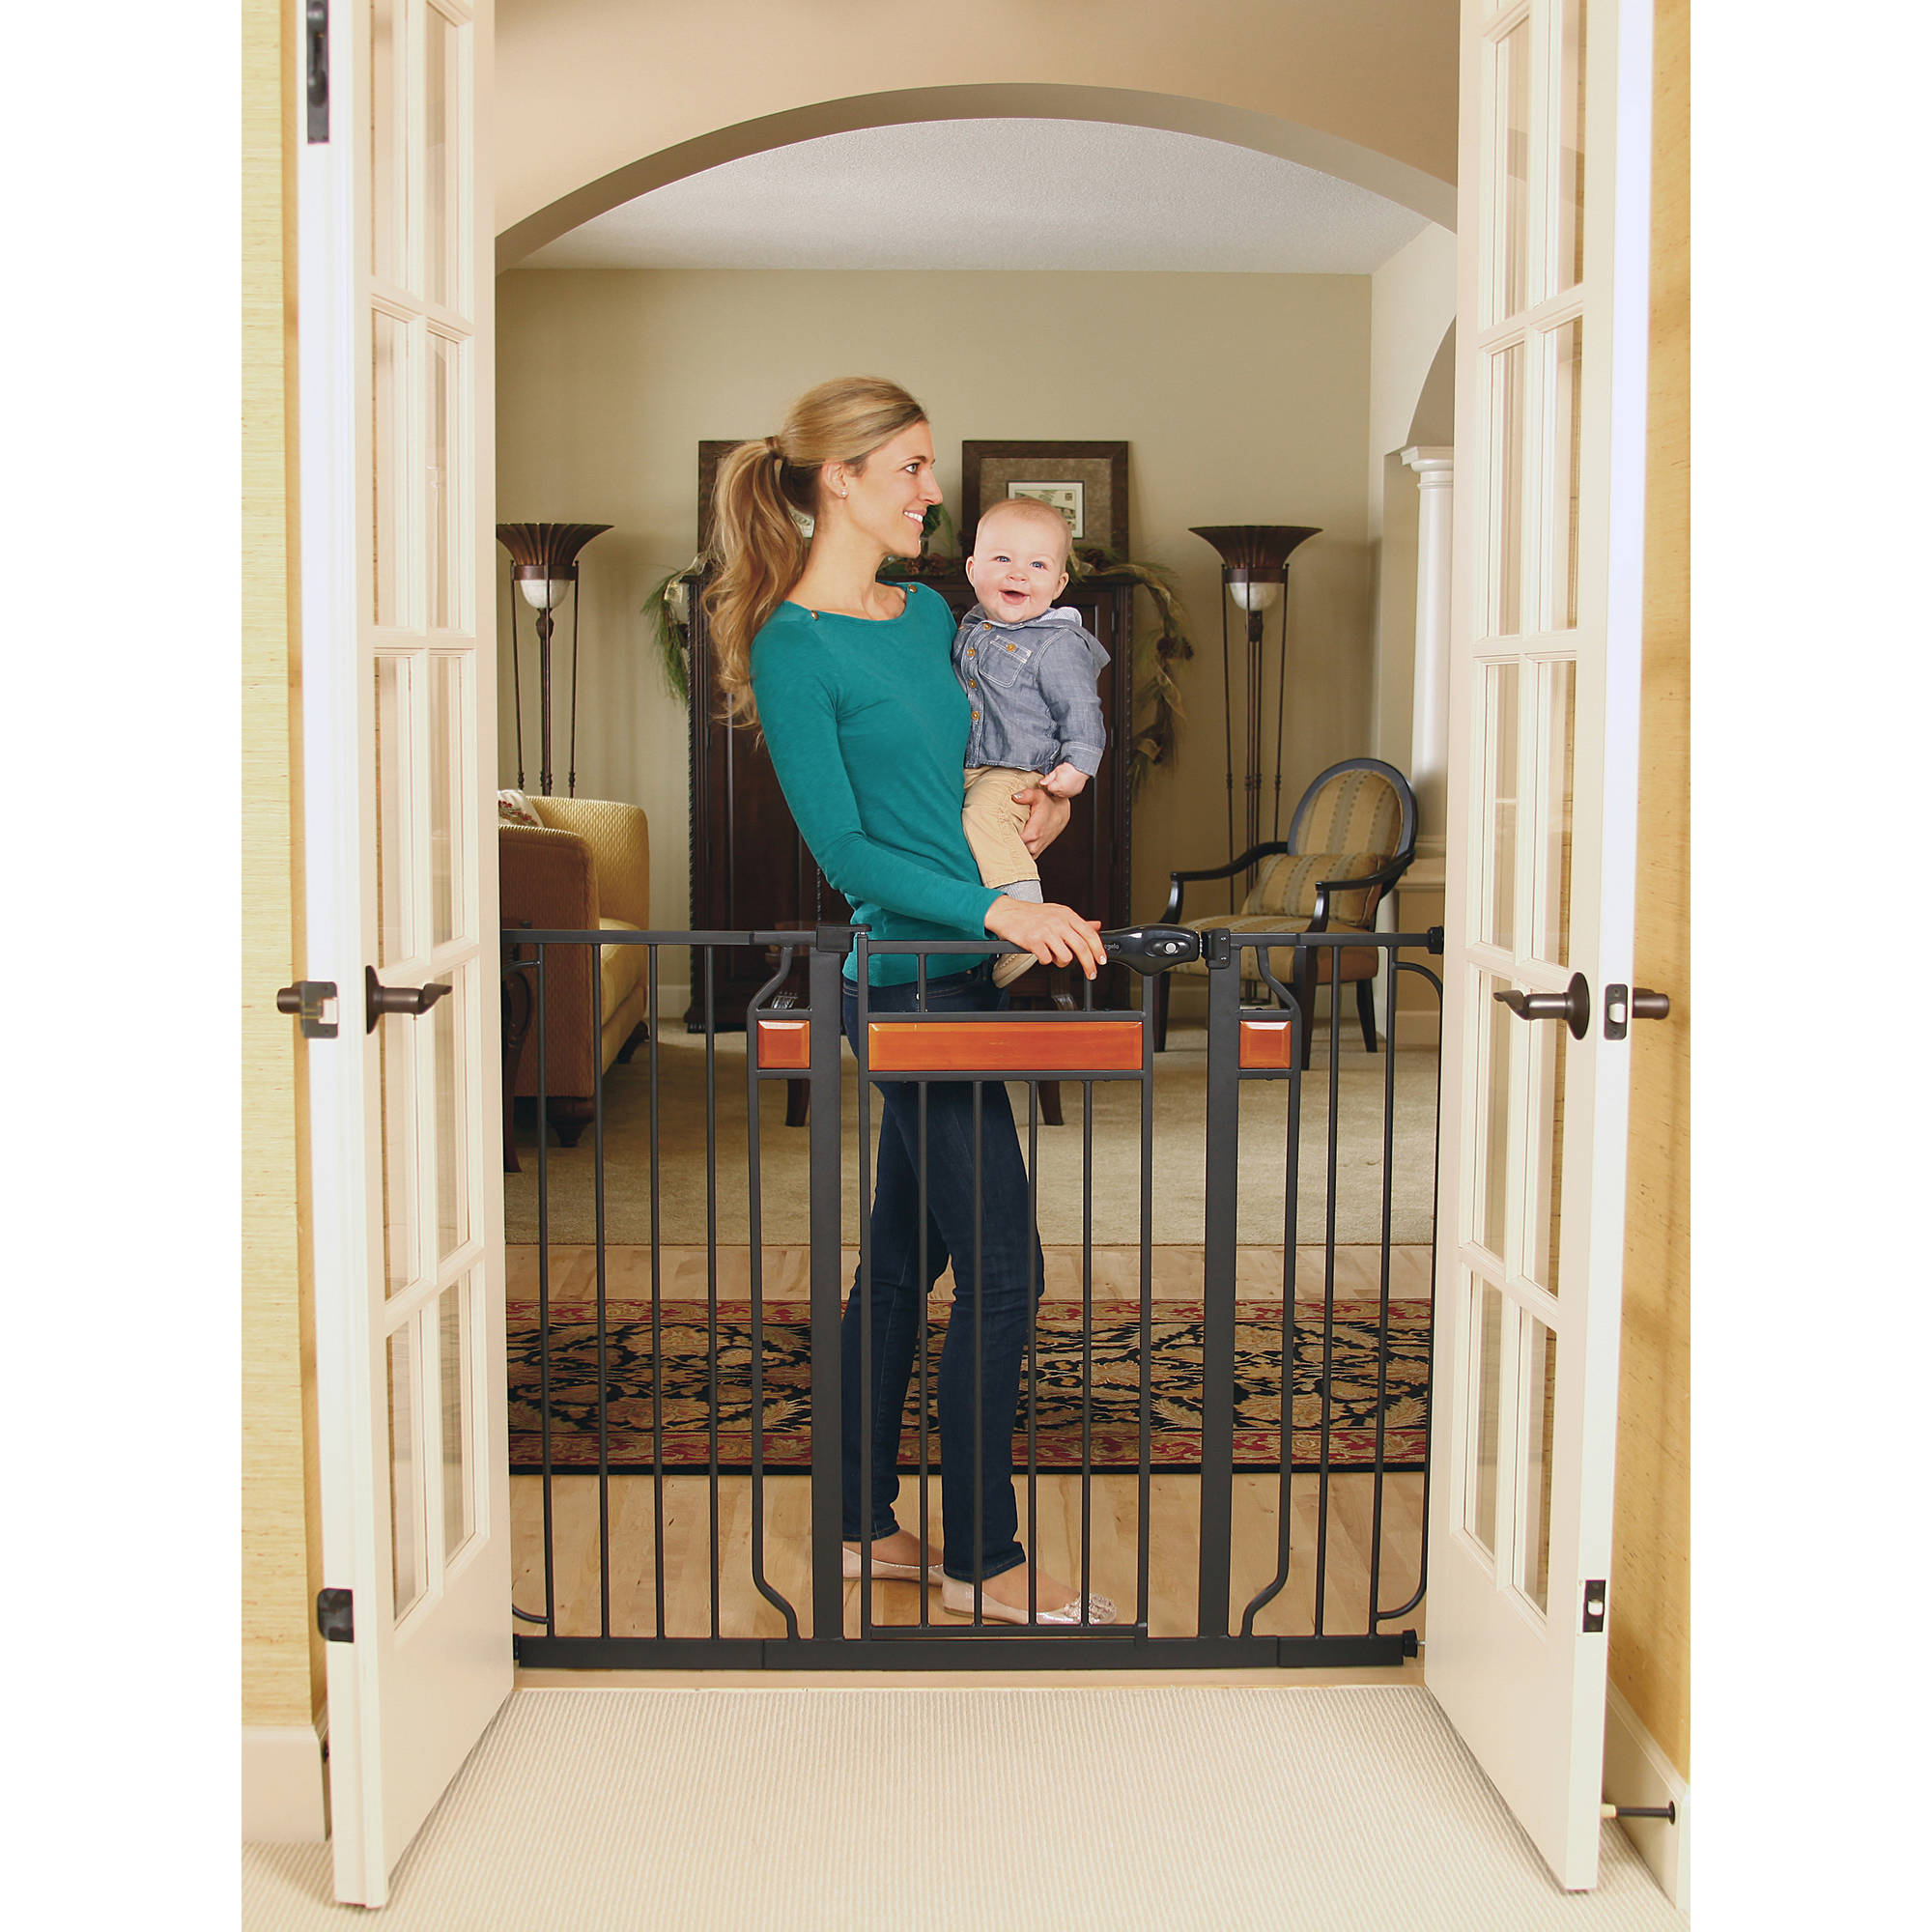 regalo home accents extra tall walk thru gate hardwood and steel